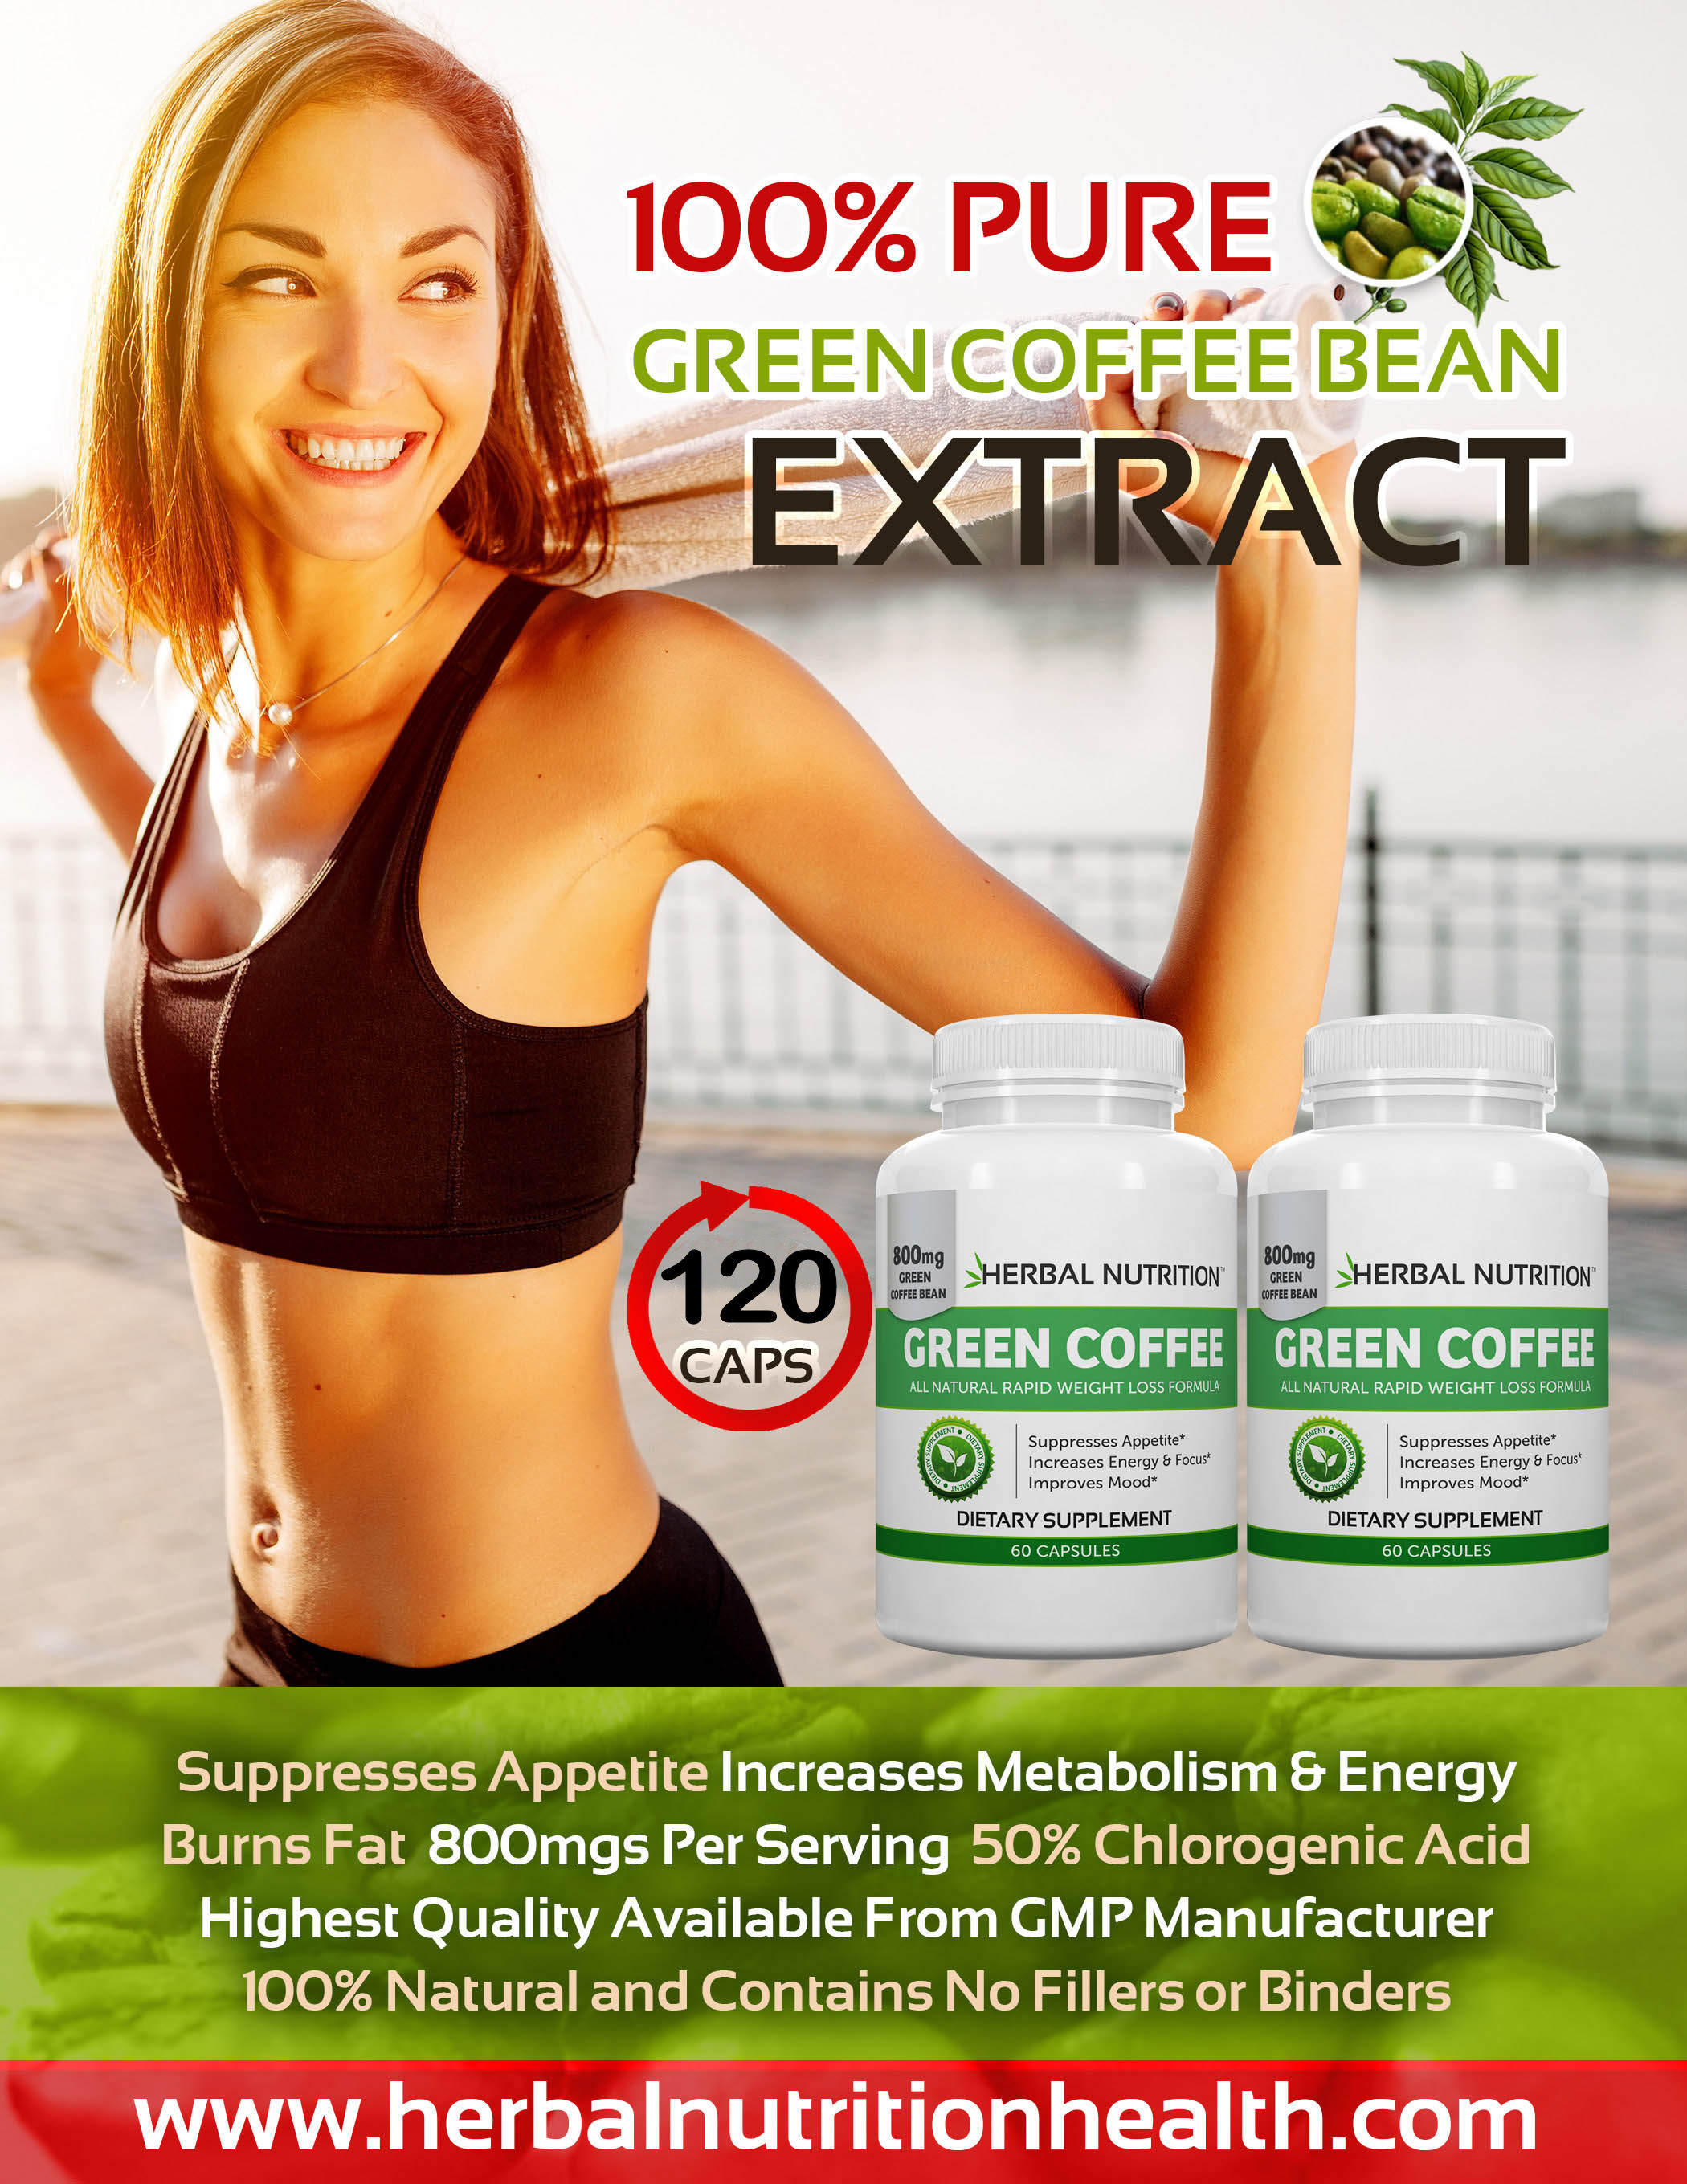 Green Coffee Bean Extract List of Benefits